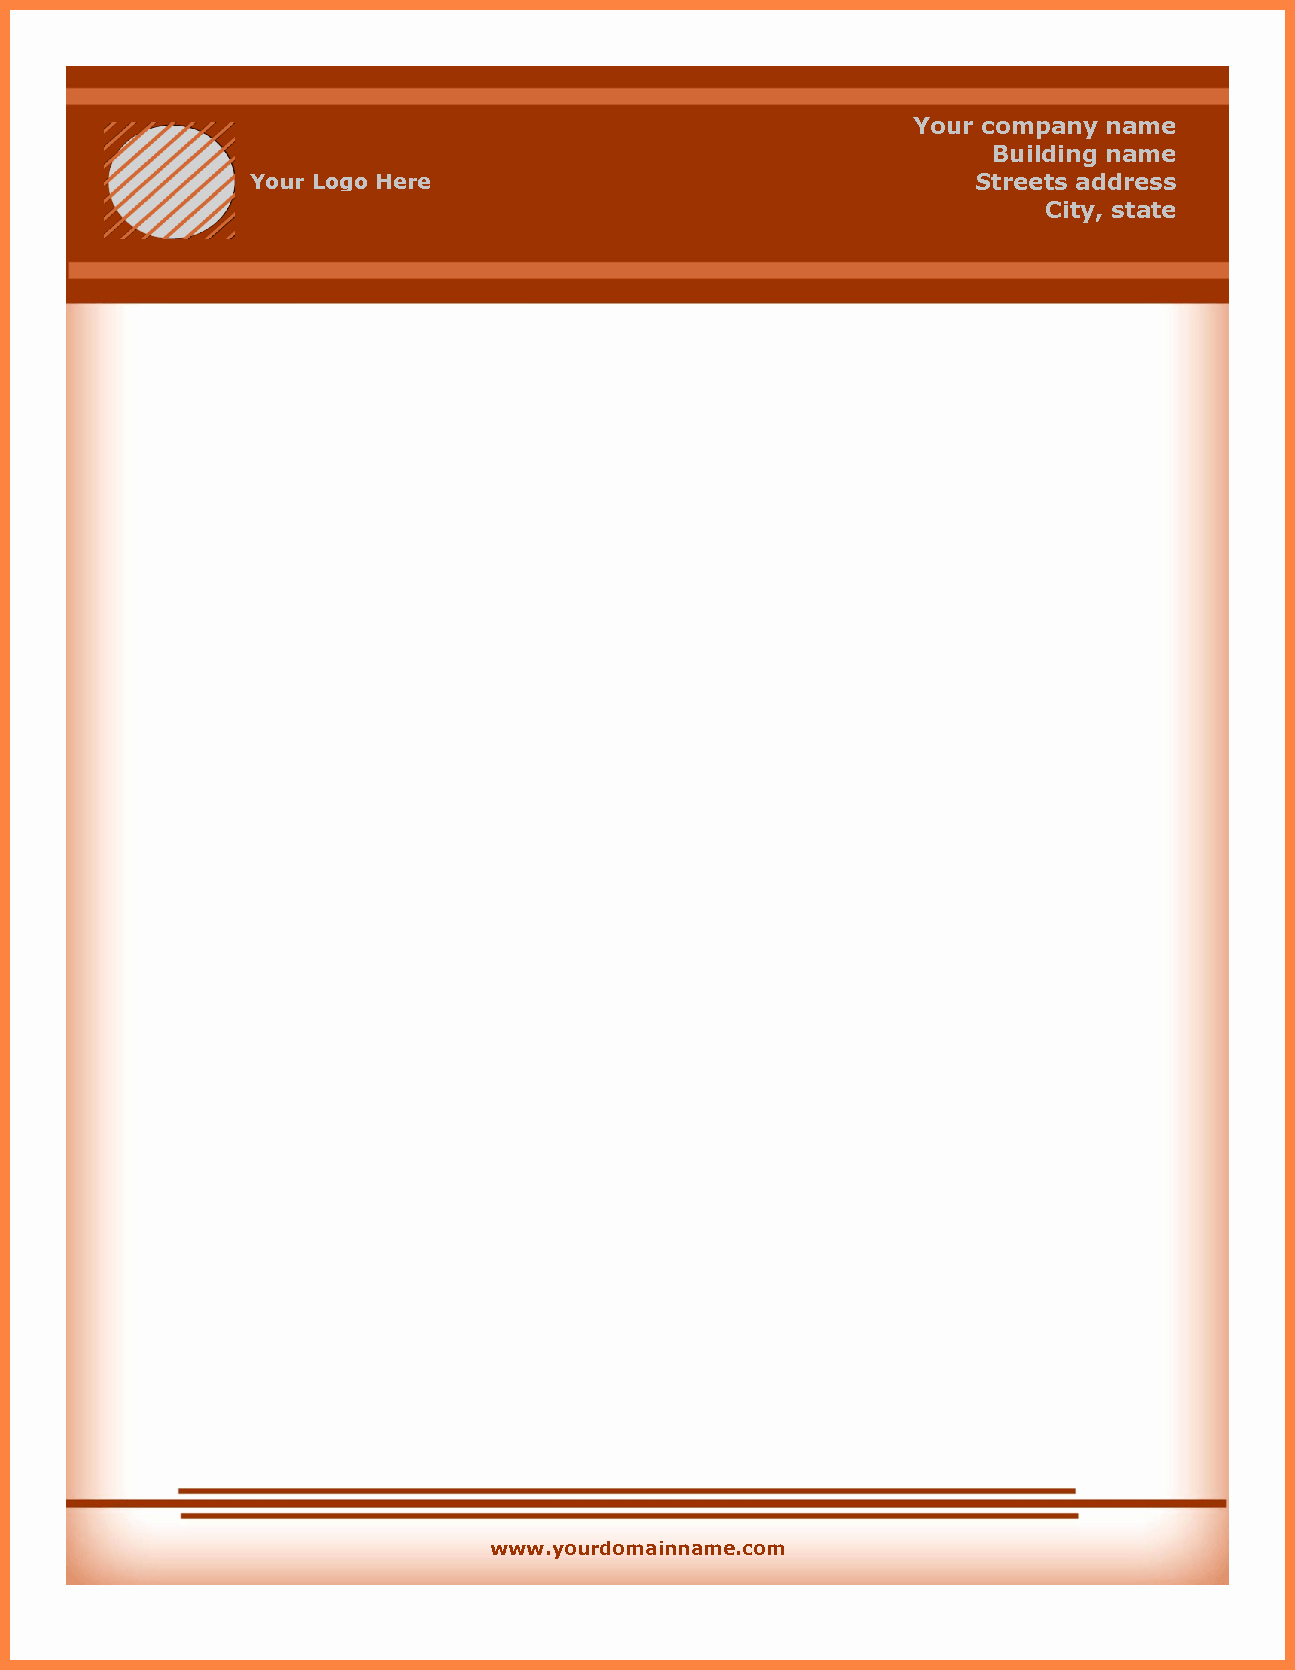 Business Letterhead Templates Free Download New 5 Letterhead Templates